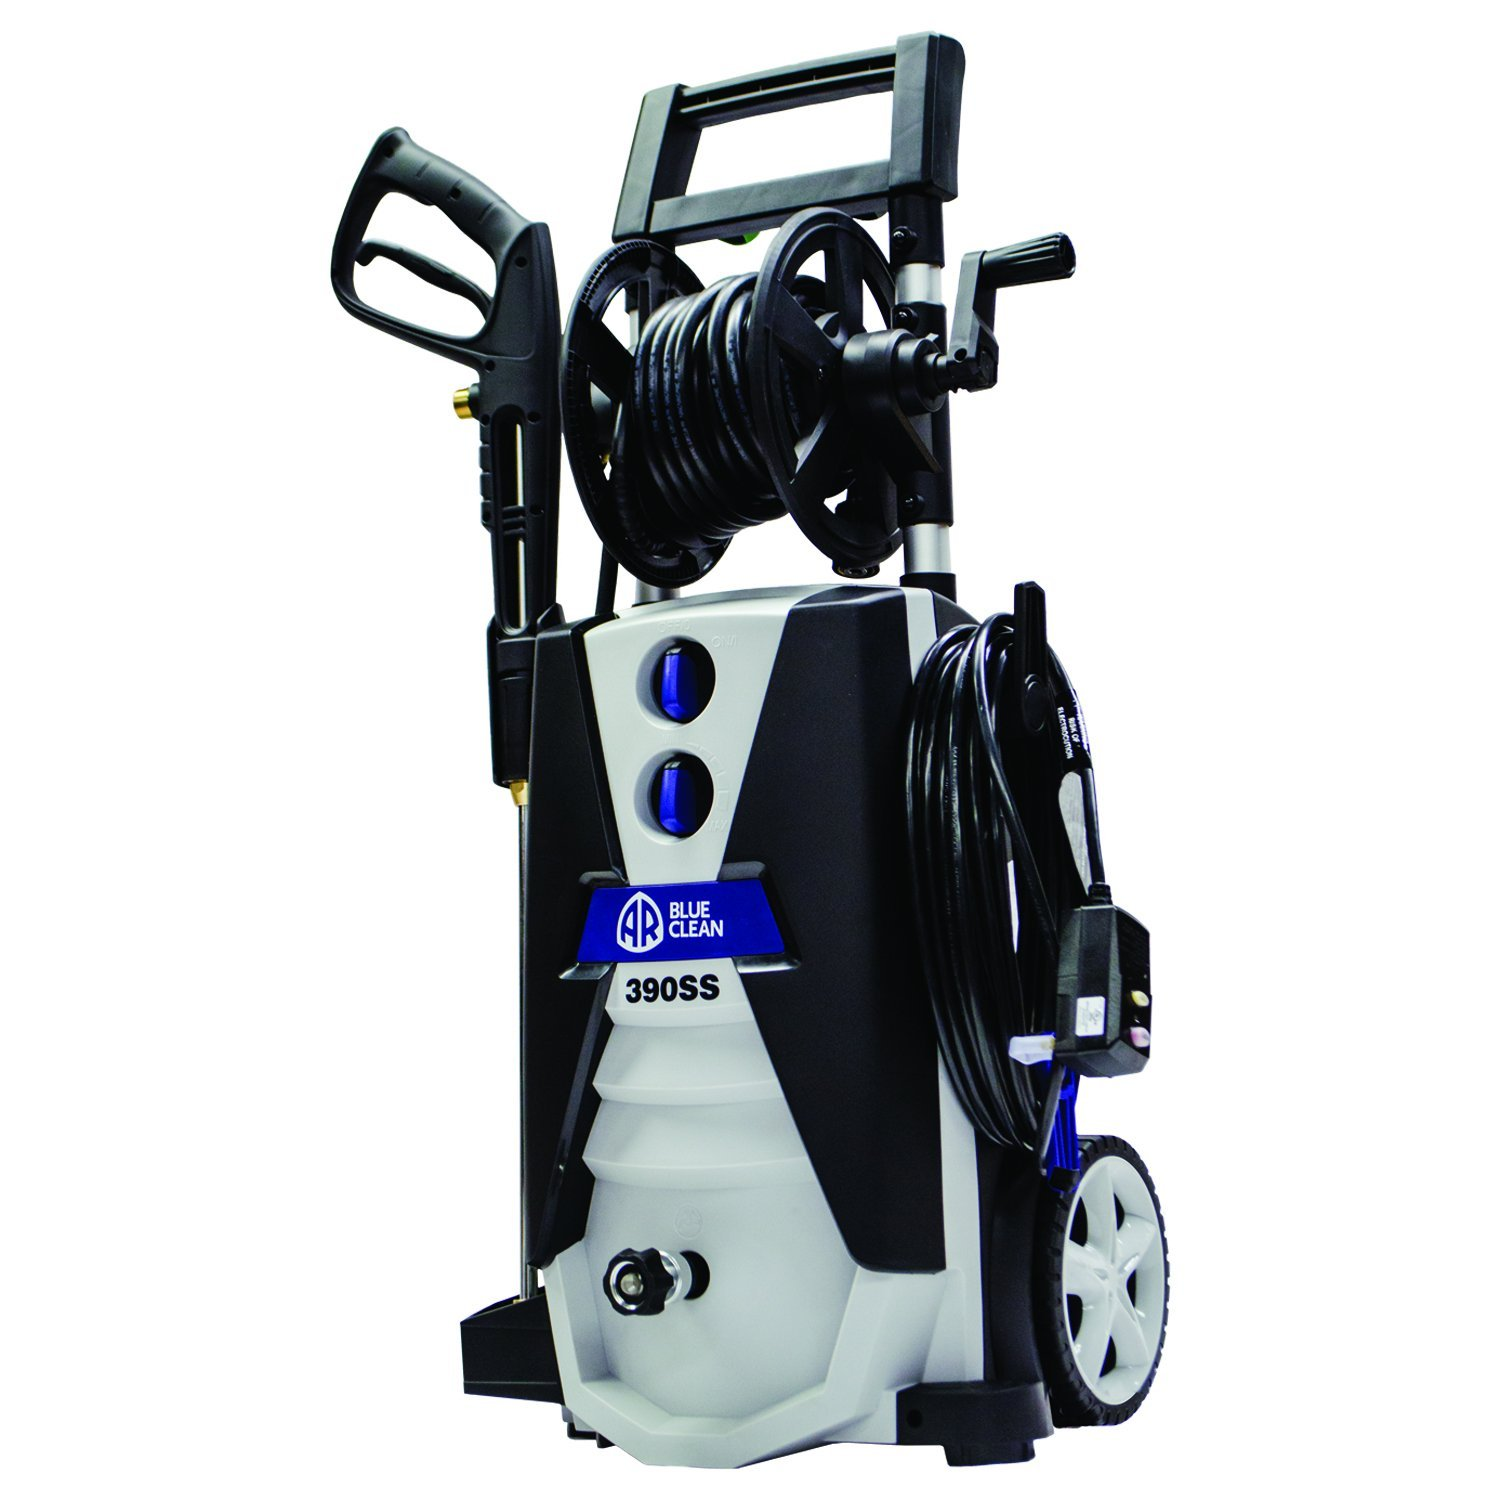 Arbluecleanar390ss Pressure Washer Reviews